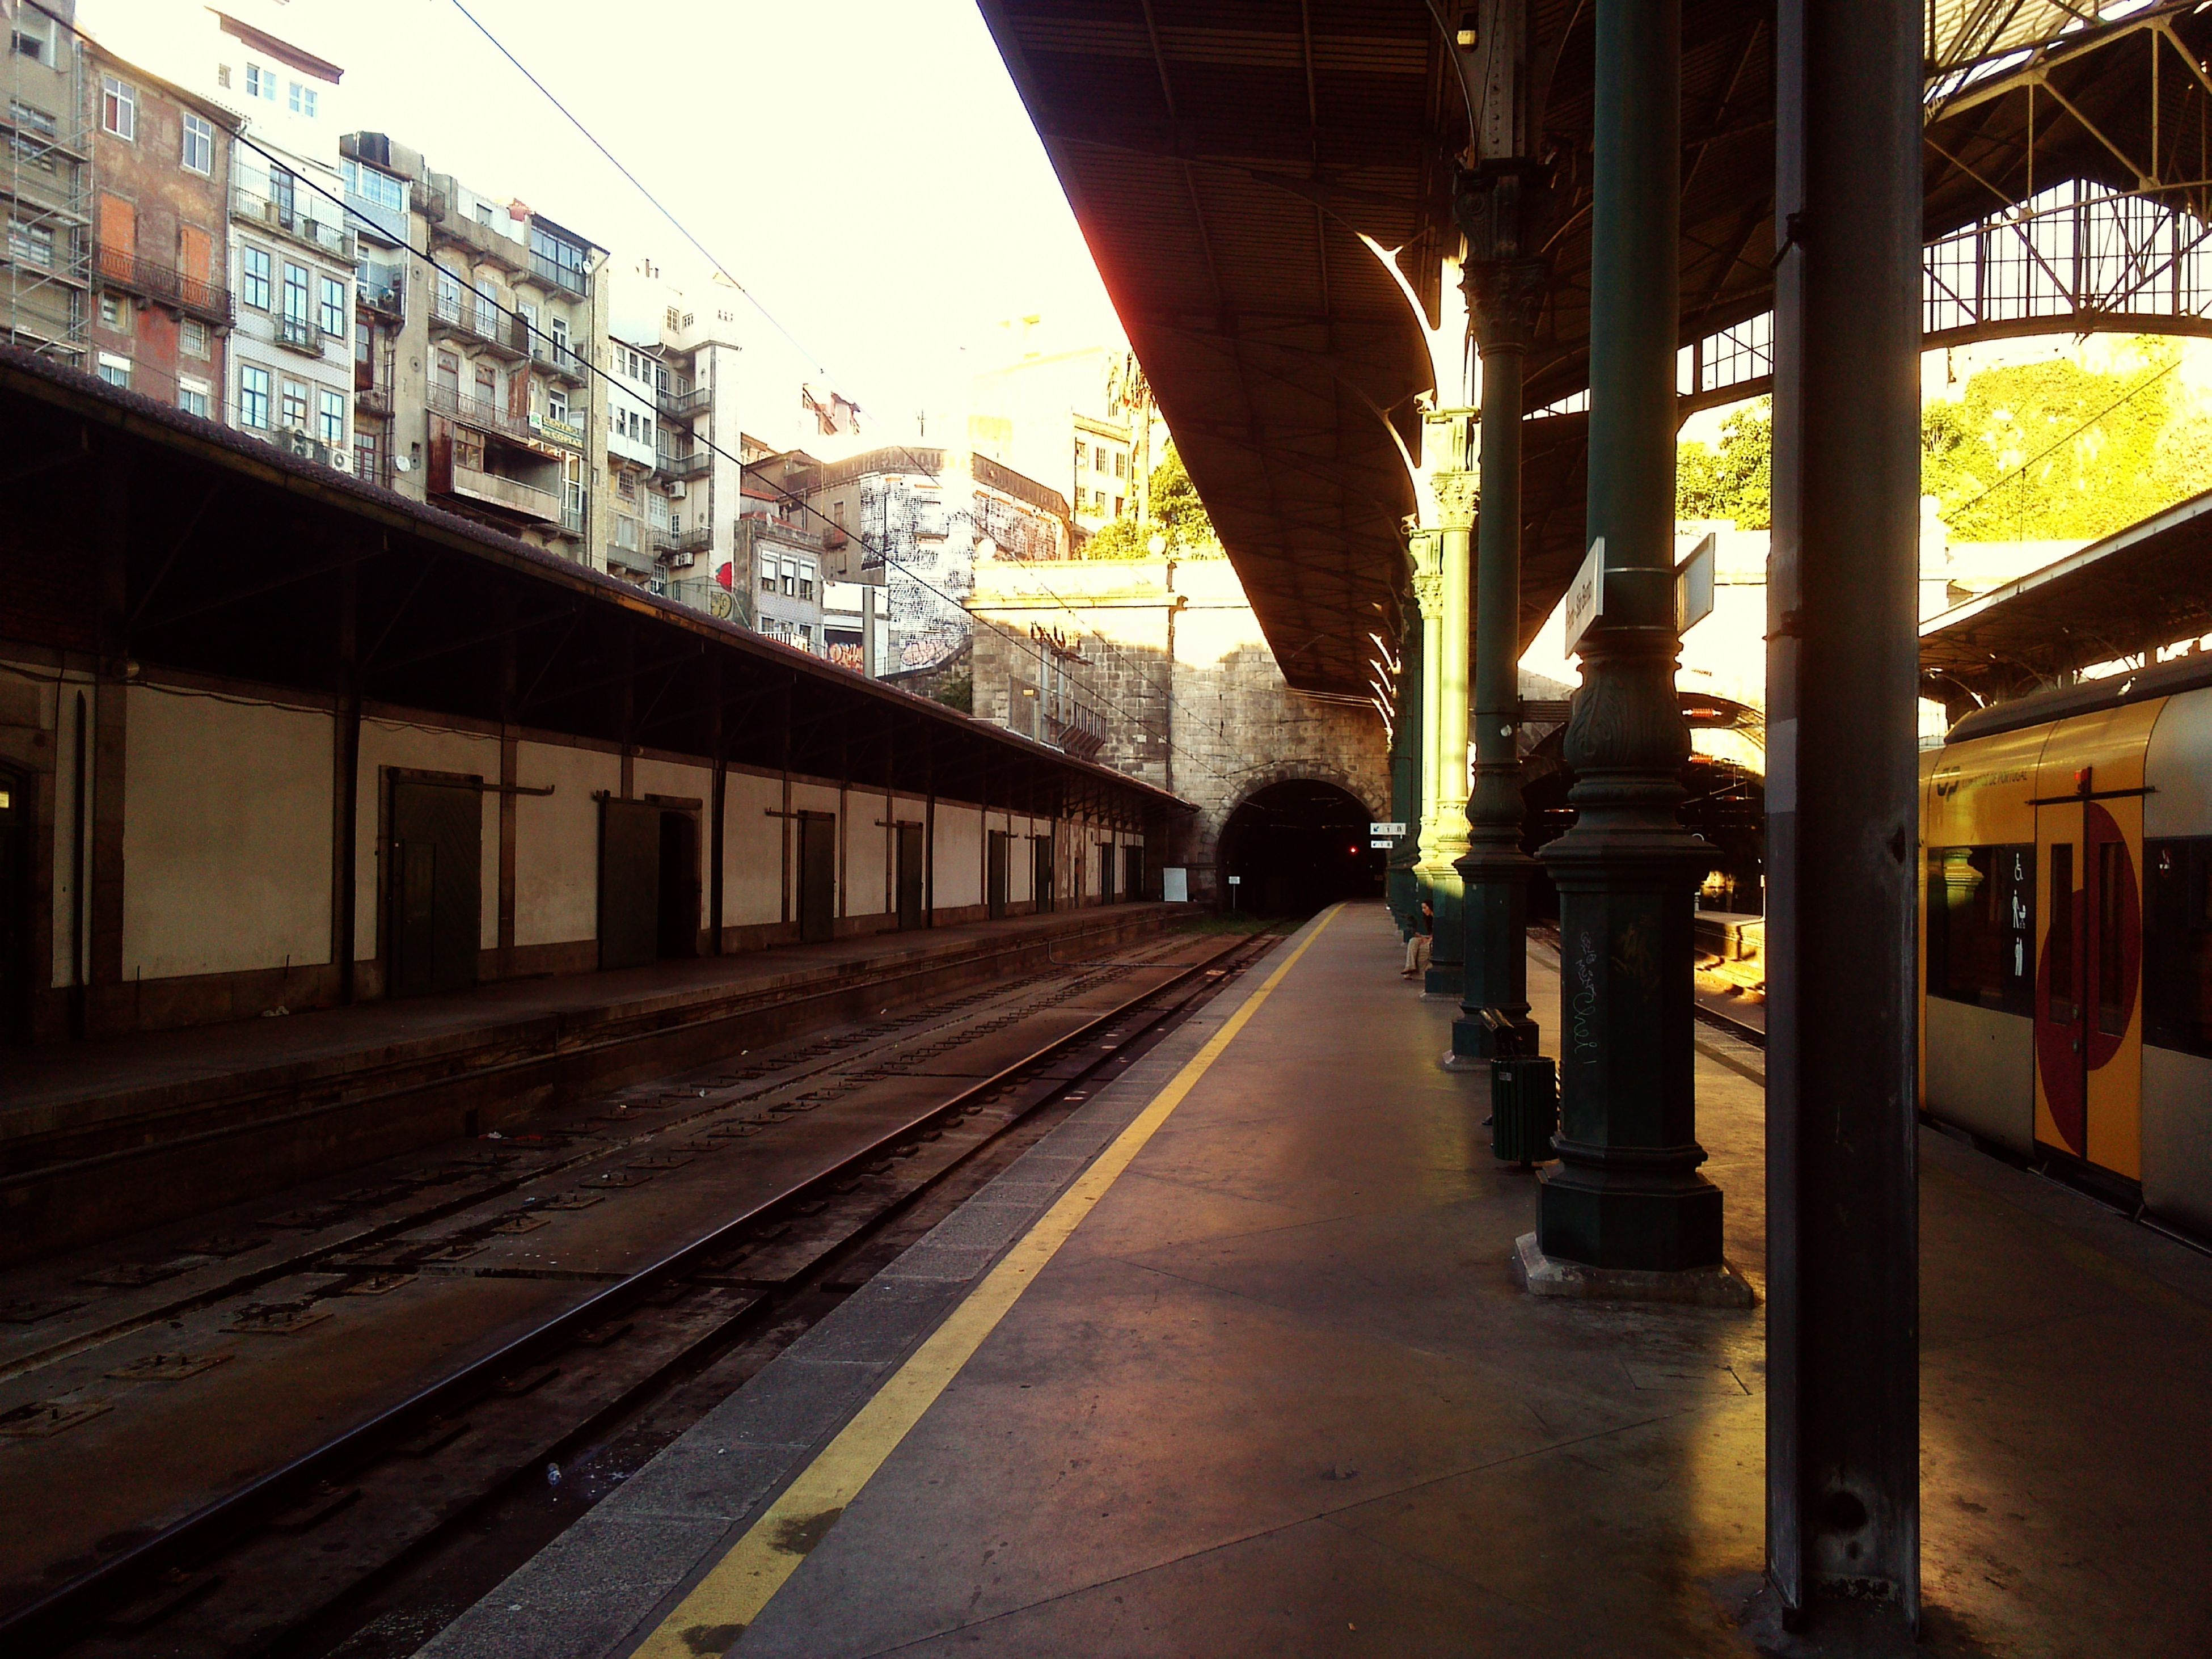 architecture, built structure, the way forward, railroad track, transportation, building exterior, diminishing perspective, vanishing point, rail transportation, city, public transportation, empty, long, railroad station platform, sky, railroad station, incidental people, outdoors, connection, no people